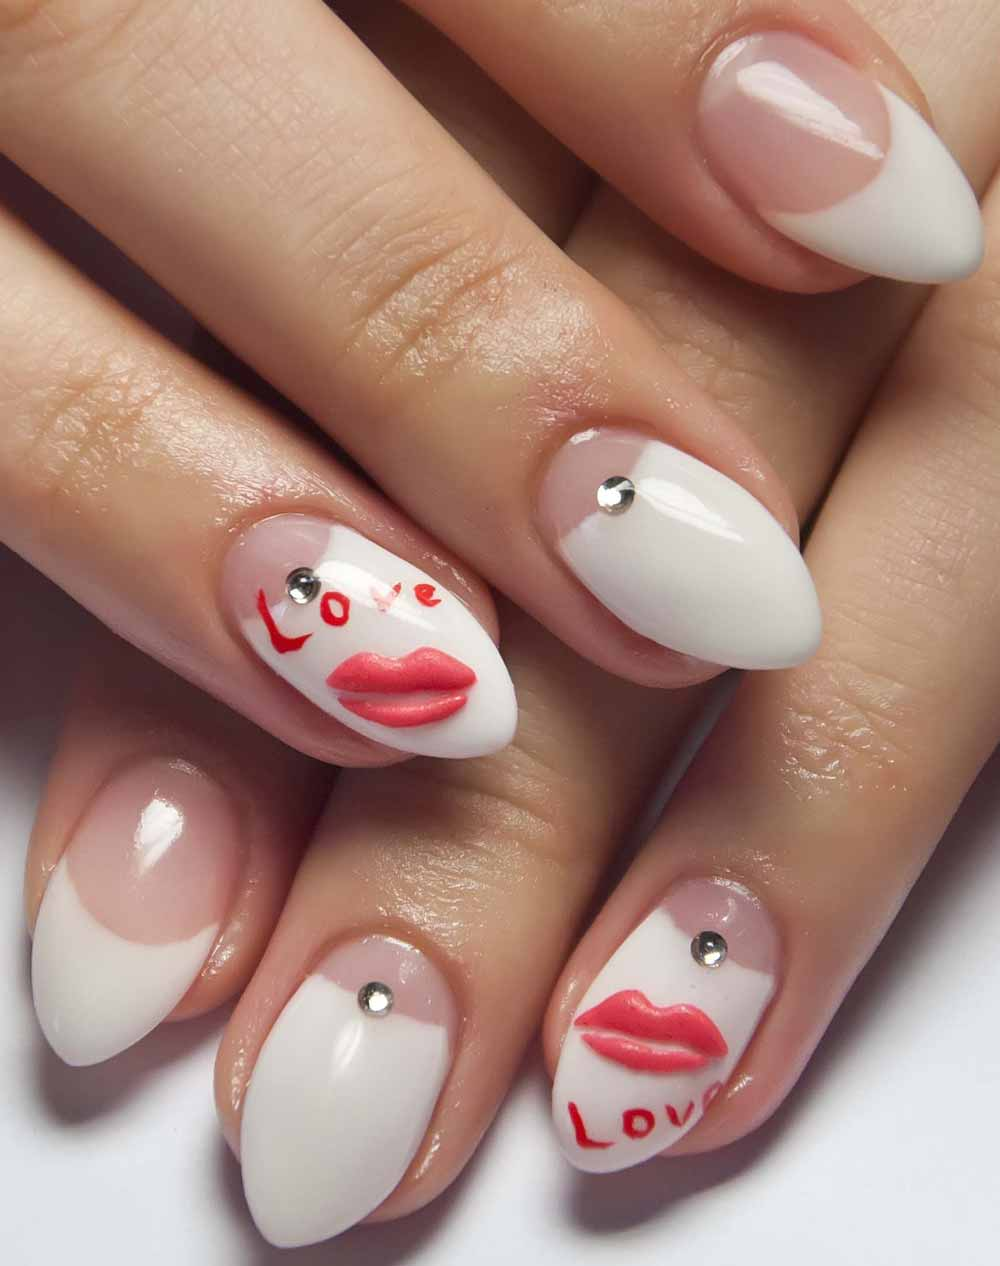 Nail gel Valentine's Day